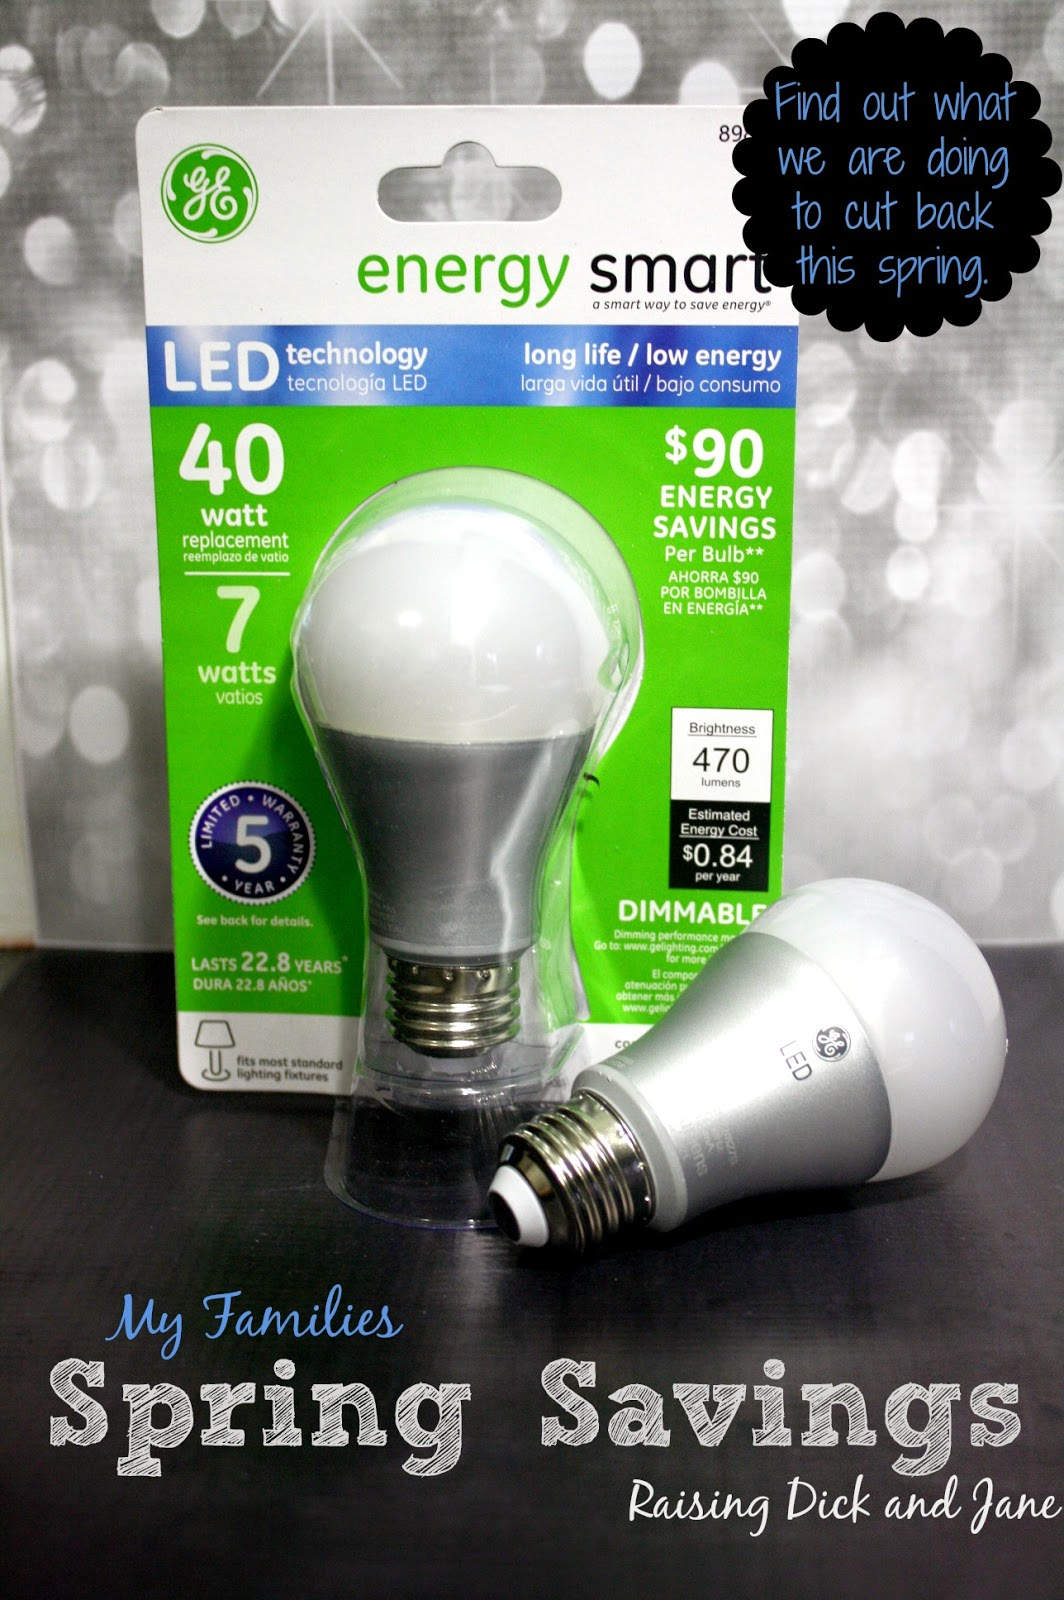 Spring Savings Ideas #LEDSavings #shop #Cbias